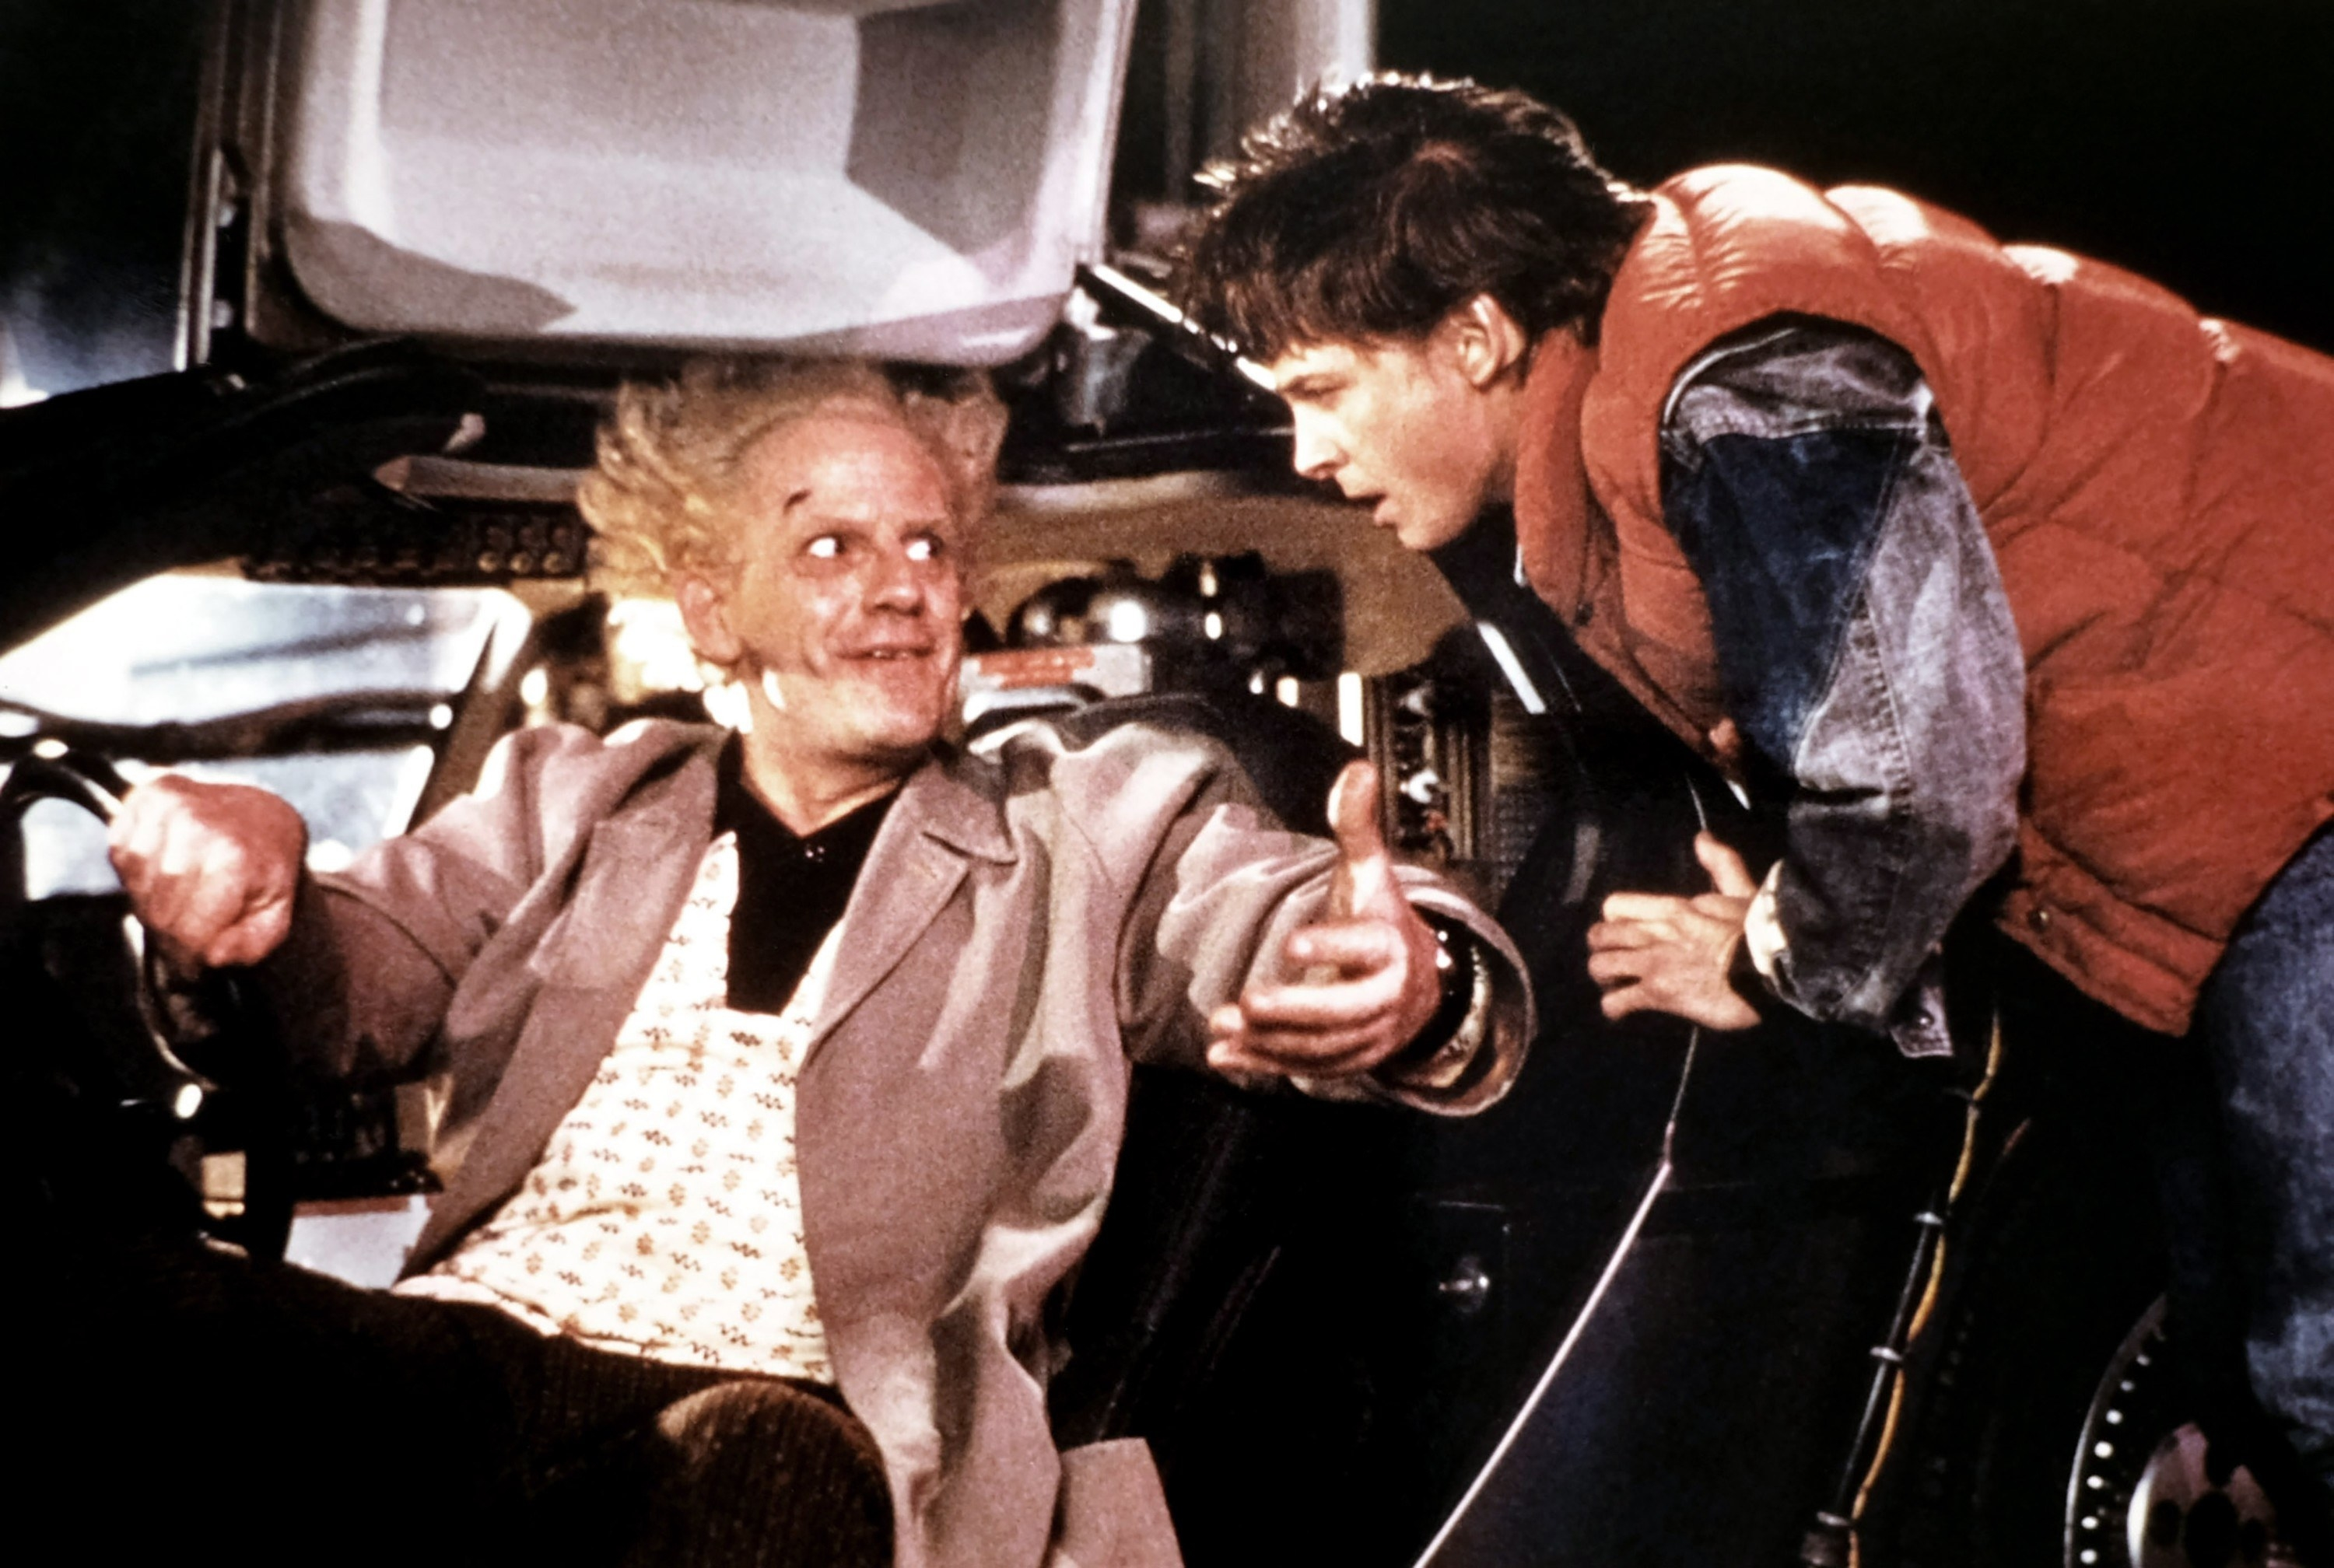 michael j fox and christopher loyd talking to each other while Christopher is in the car in a scene from back to the future